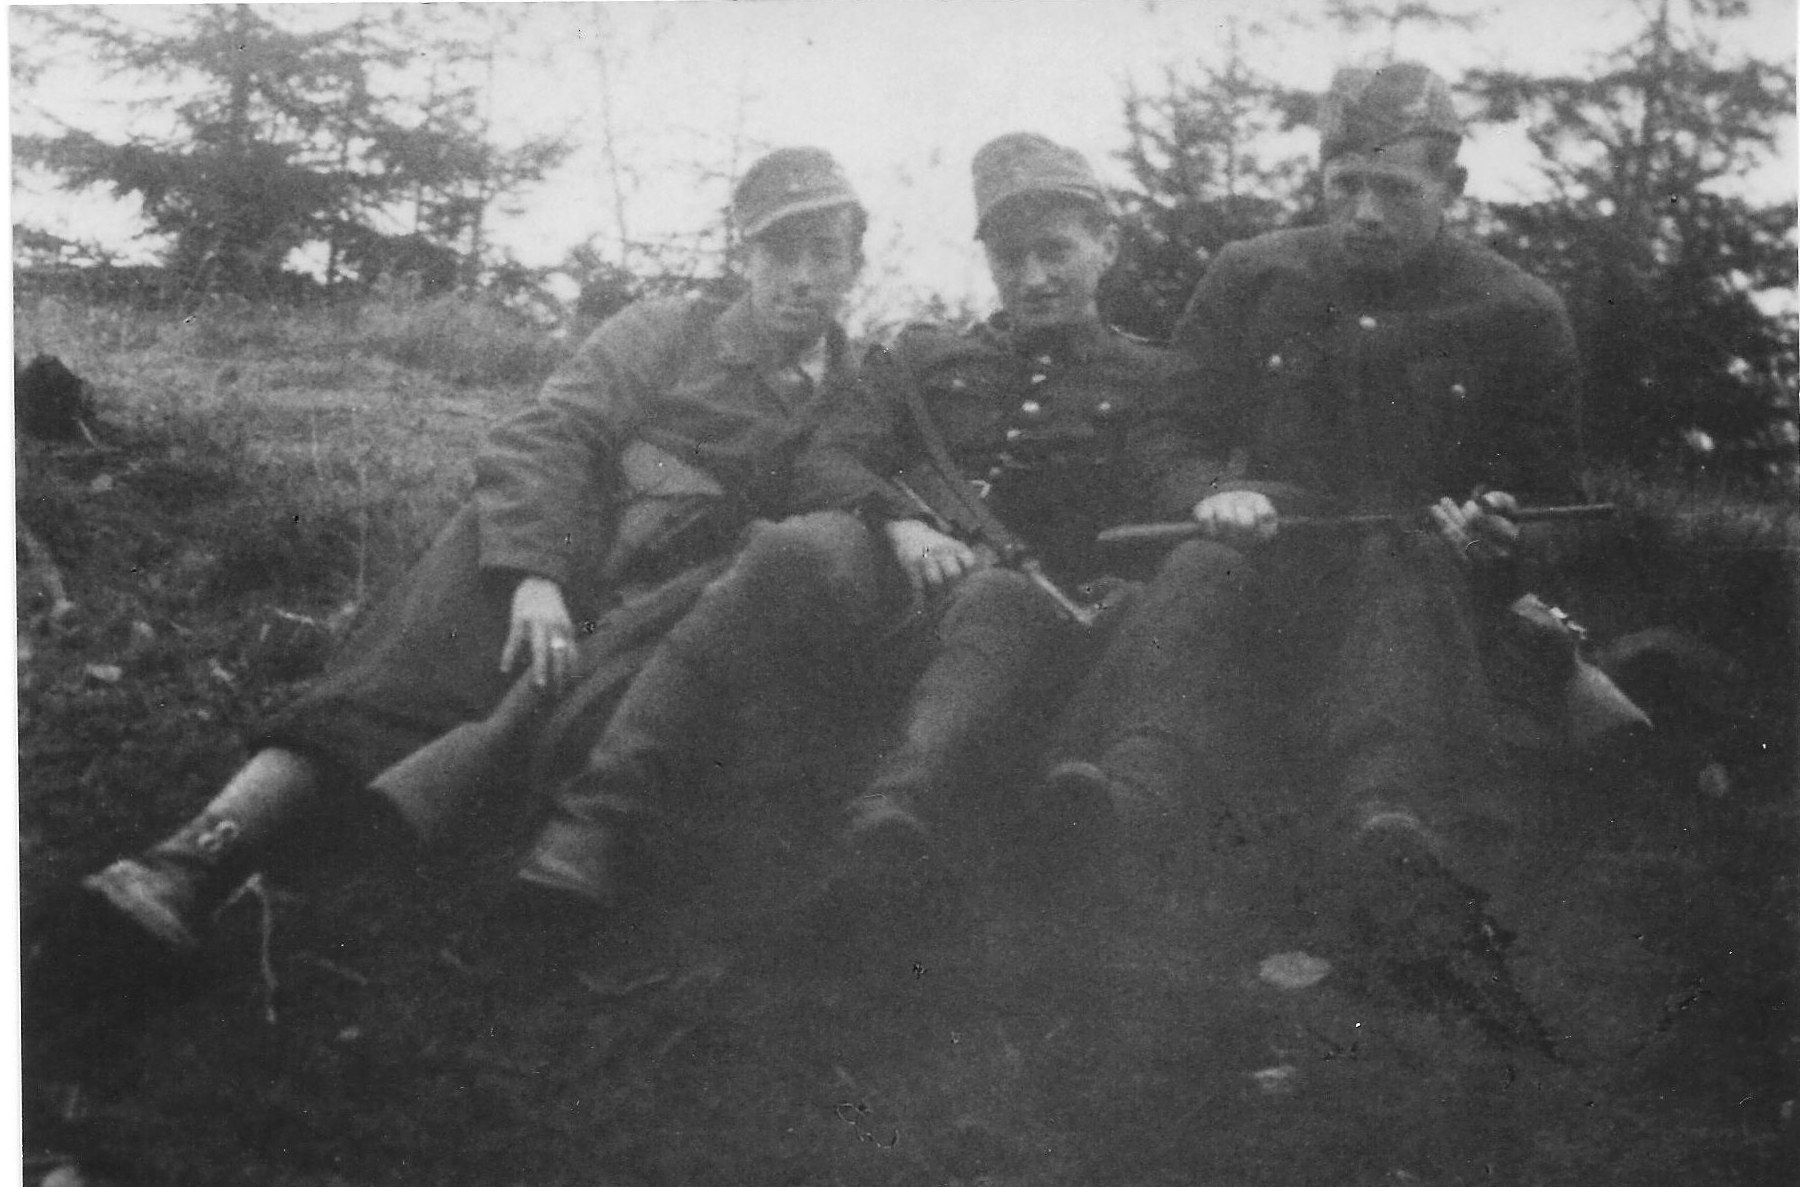 Photo:   at Lubon with Adam Hubiszta ps Łoś,Józef Węglarz  ps Mały and  Władysław Kępa  ps Ferdek in 1944